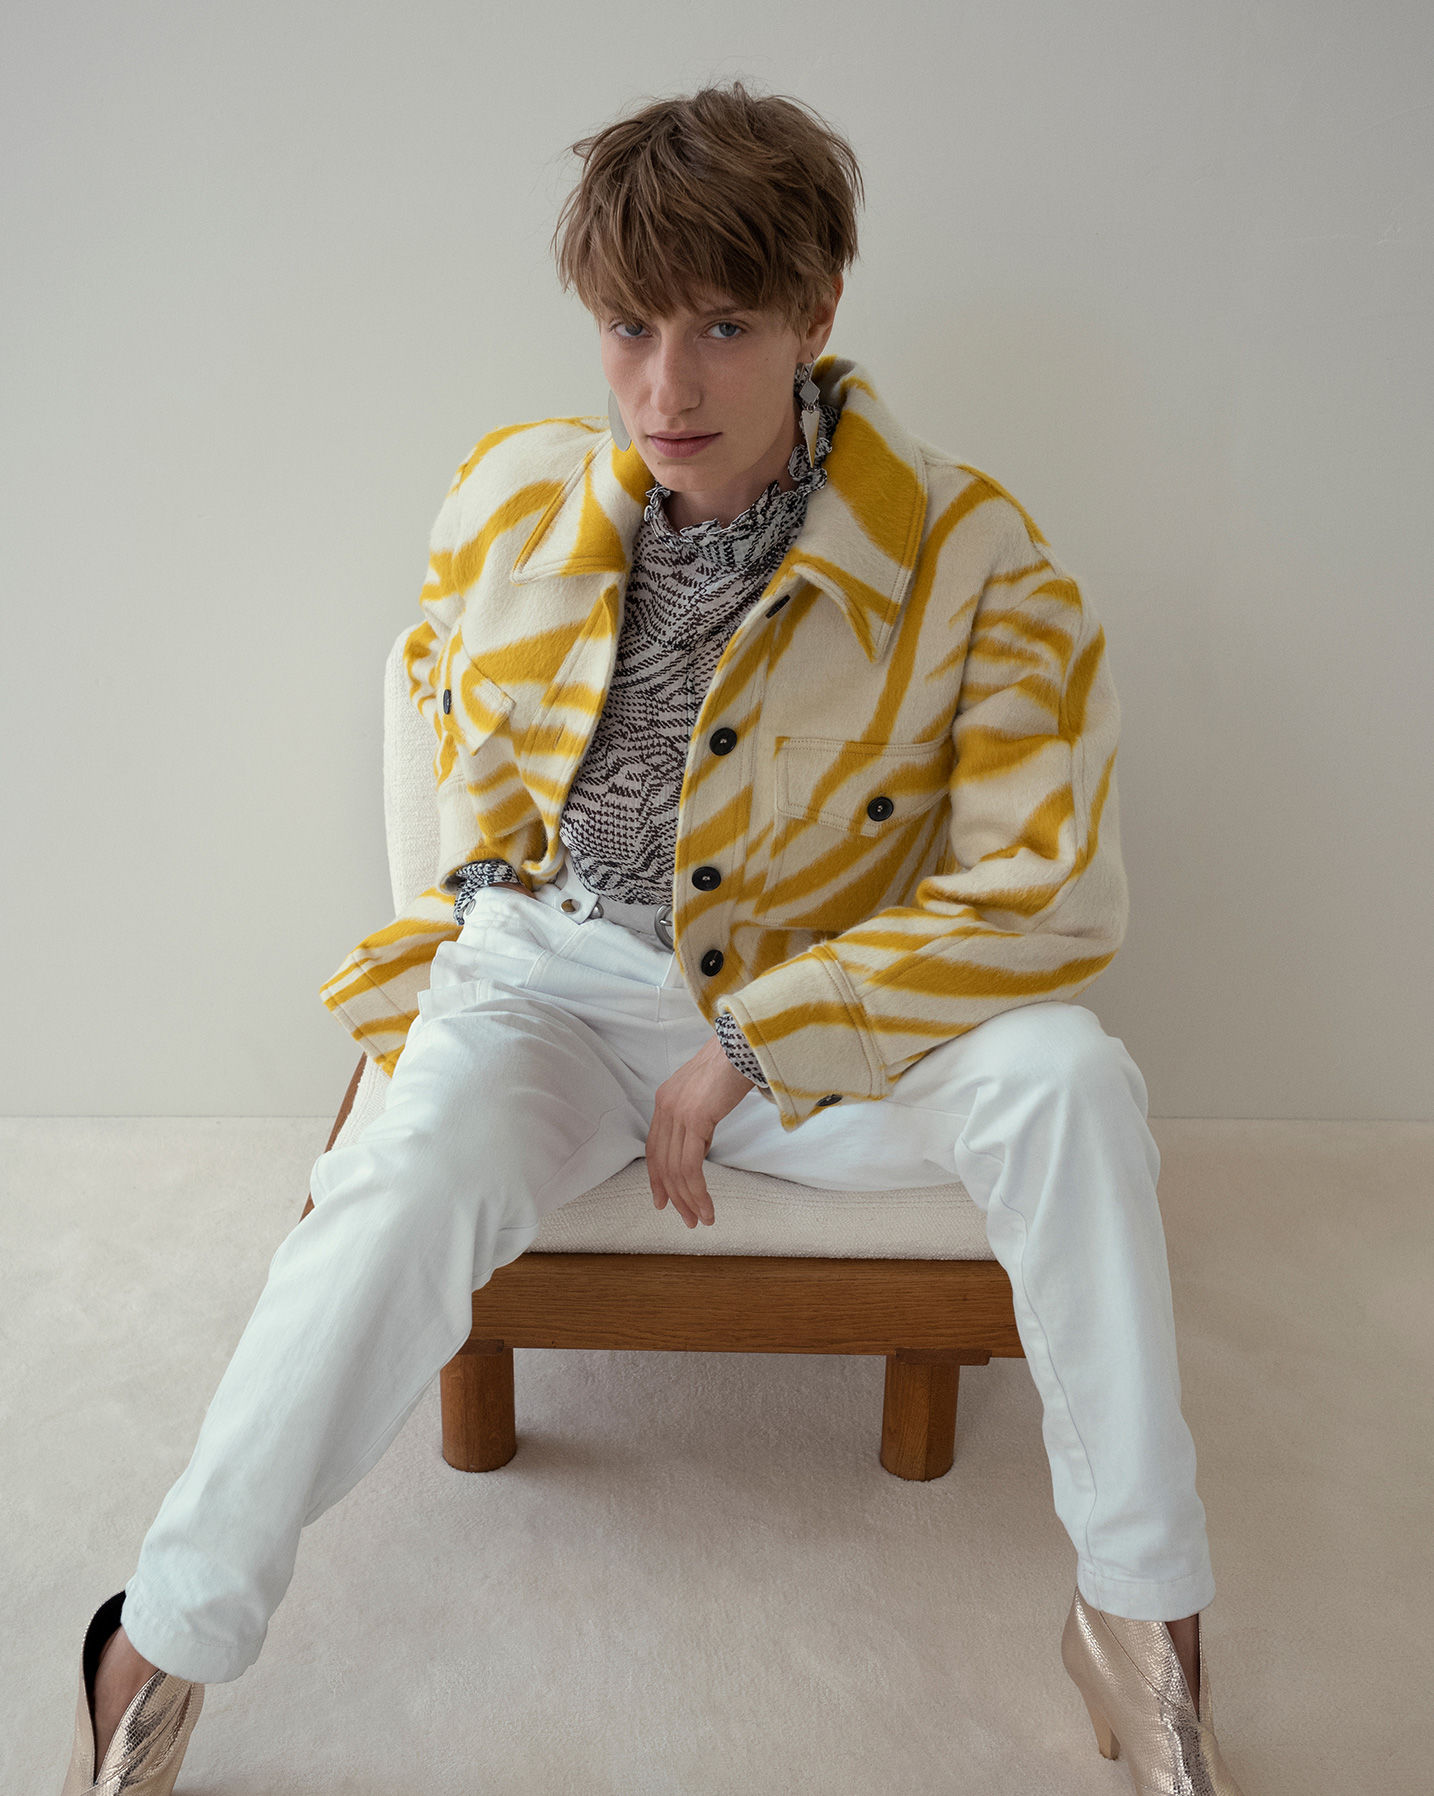 The model is sitting wearring the Harvey coat, the Emsley top and the Kerris trousers.